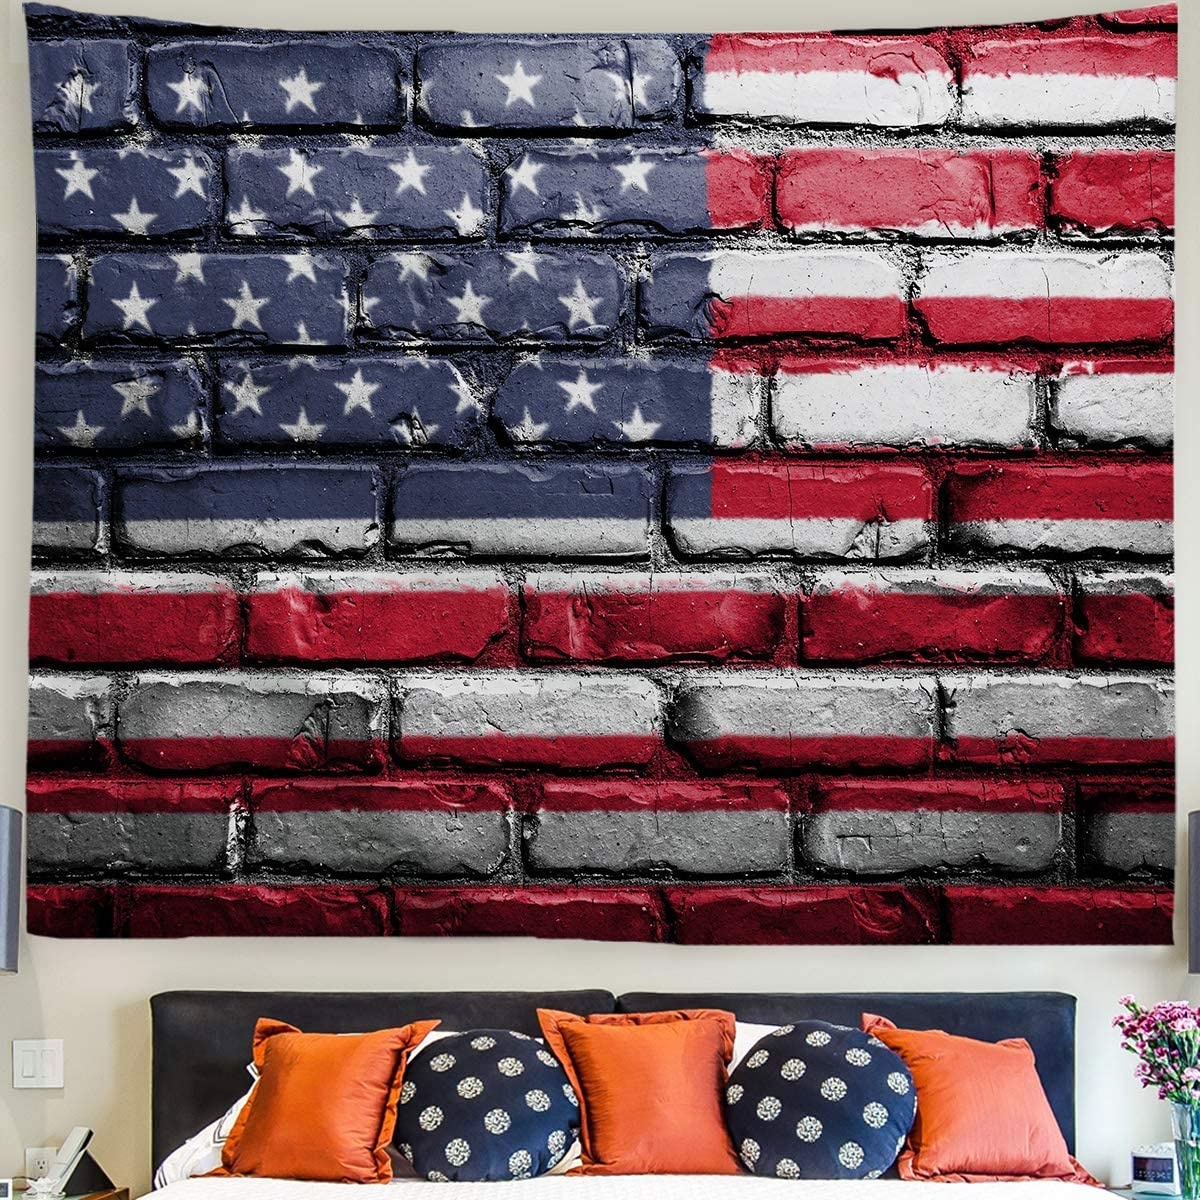 Baccessor American Flag Tapestry Wall Hanging Vintage USA Stars and Stripes Flag Tapestry Brick Wall Tapestry for Dorm Bedroom College Living Room Office Decor, 90 W x 71 L, US Flag